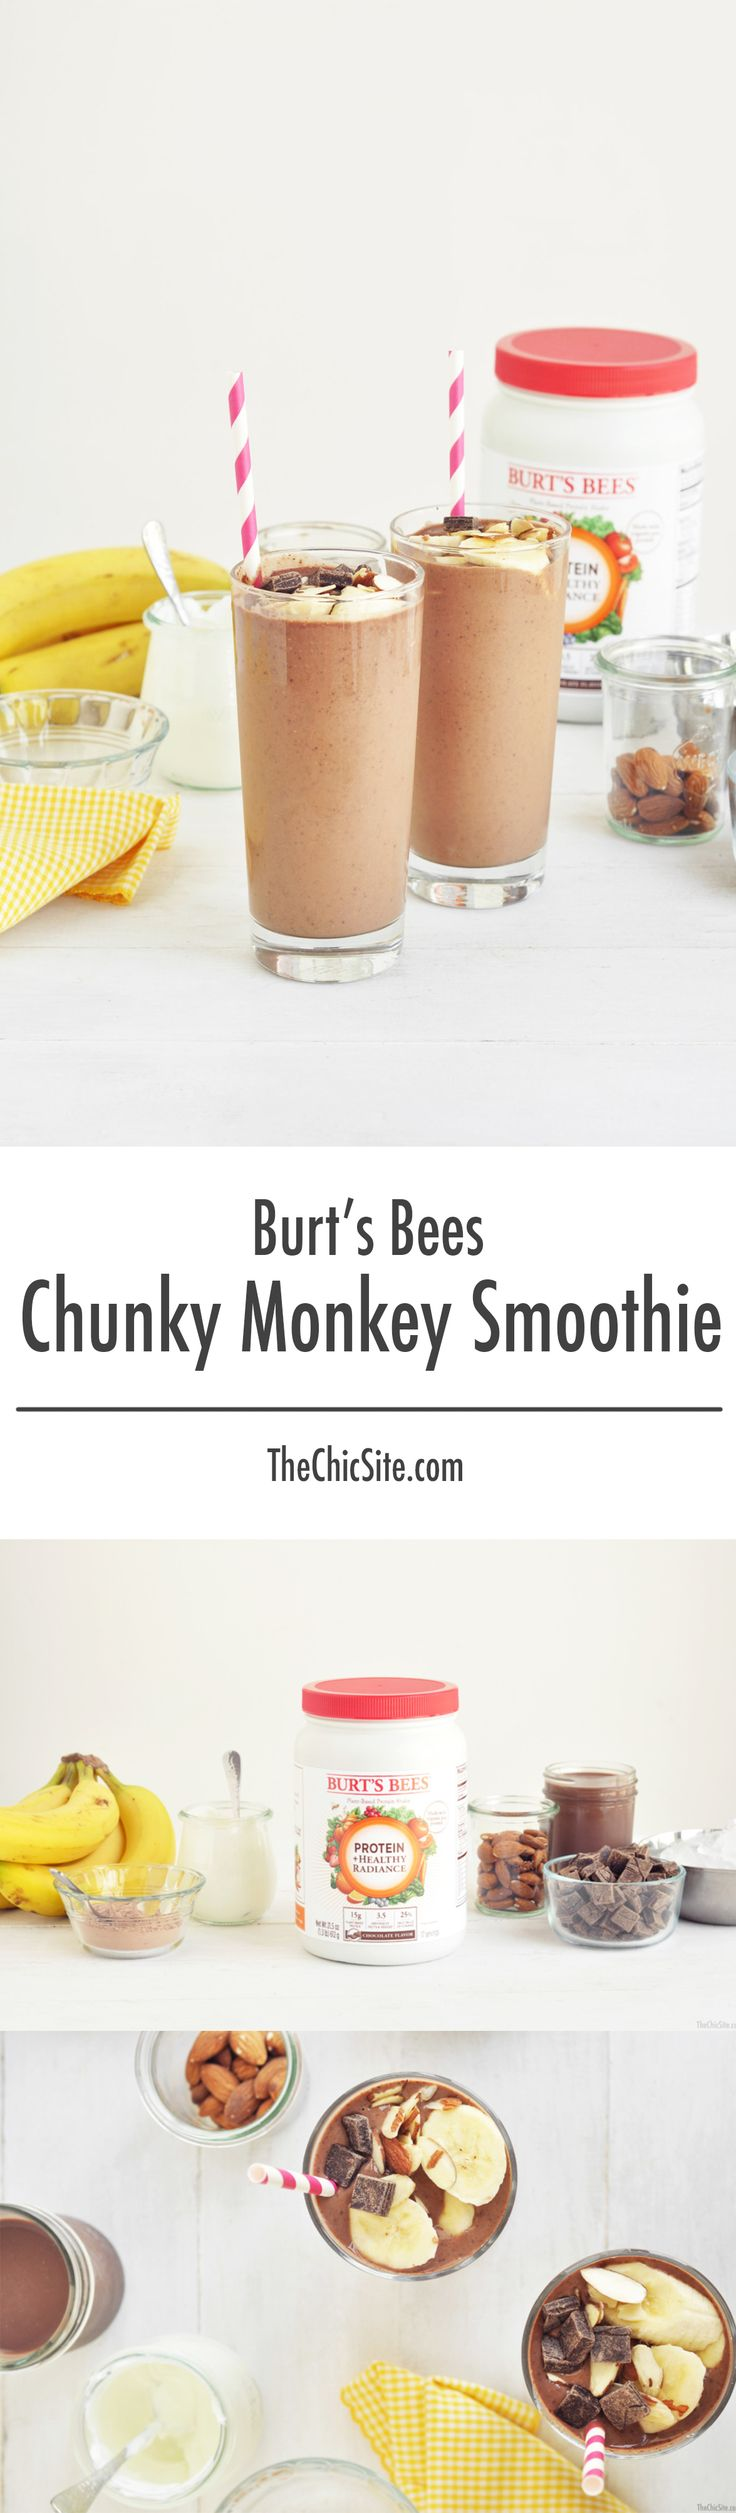 113 Best Smoothies And Drinks Images On Pinterest Chic Better Sq Chunky Bar White 100 Gr Ive Partnered With Burtsbees To Create A Healthy Version Of The Classic